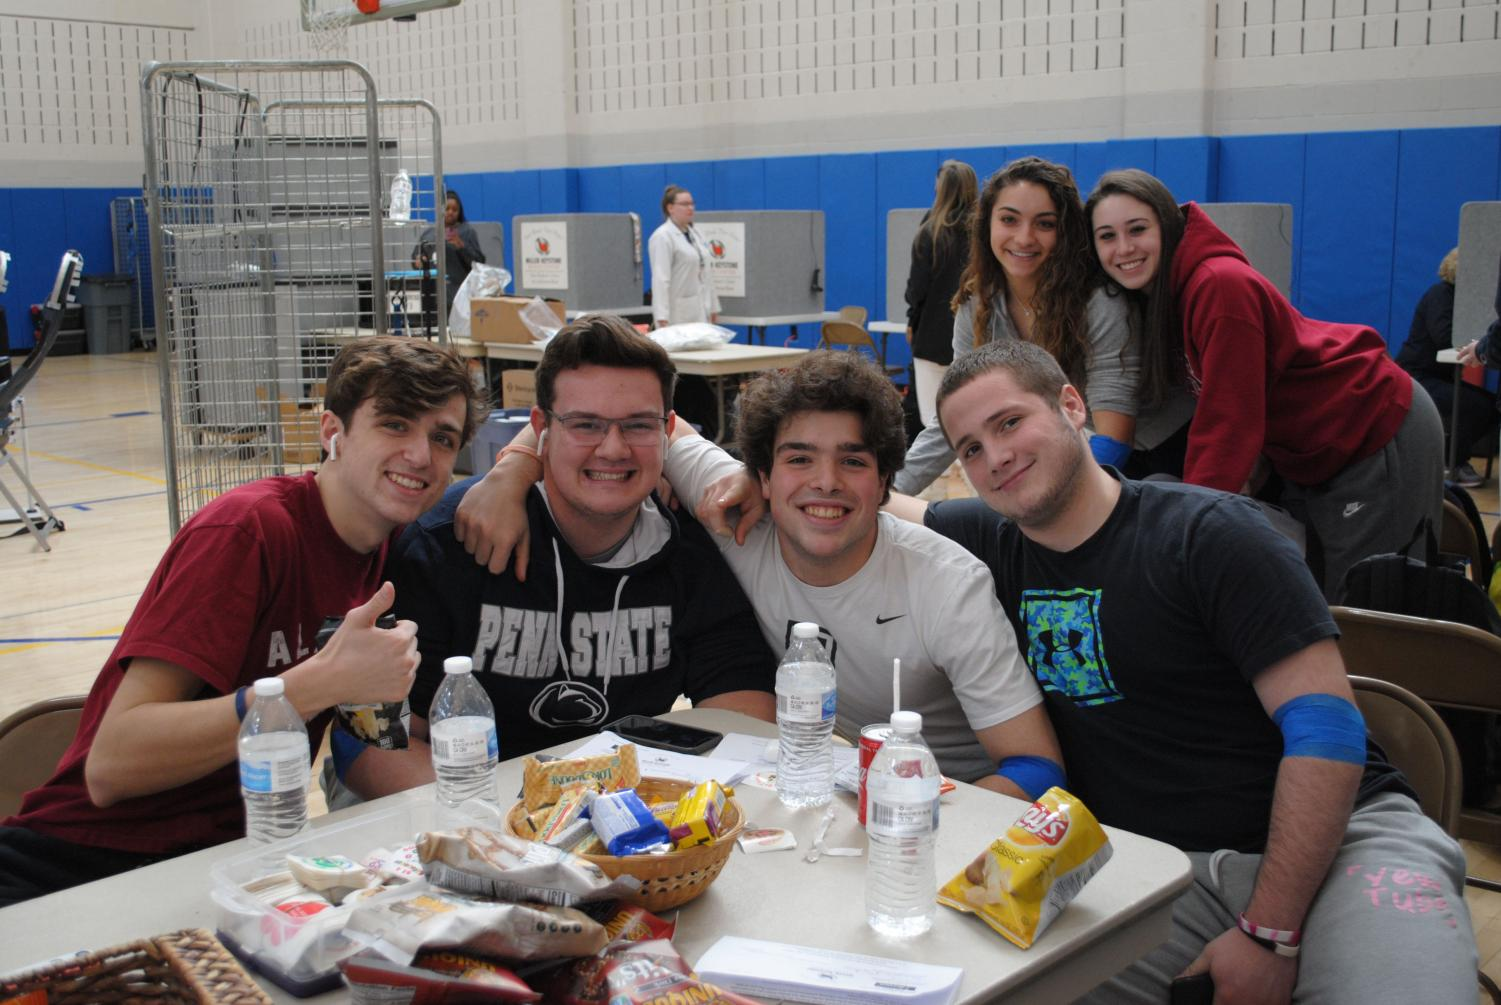 Spring-Ford students (from left) Joe Morgan, Cody Lutz, Gunnar Romano, Peyton Gensler, Mandie Pierce, and Lexy Hammer take part in the school's blood drive.